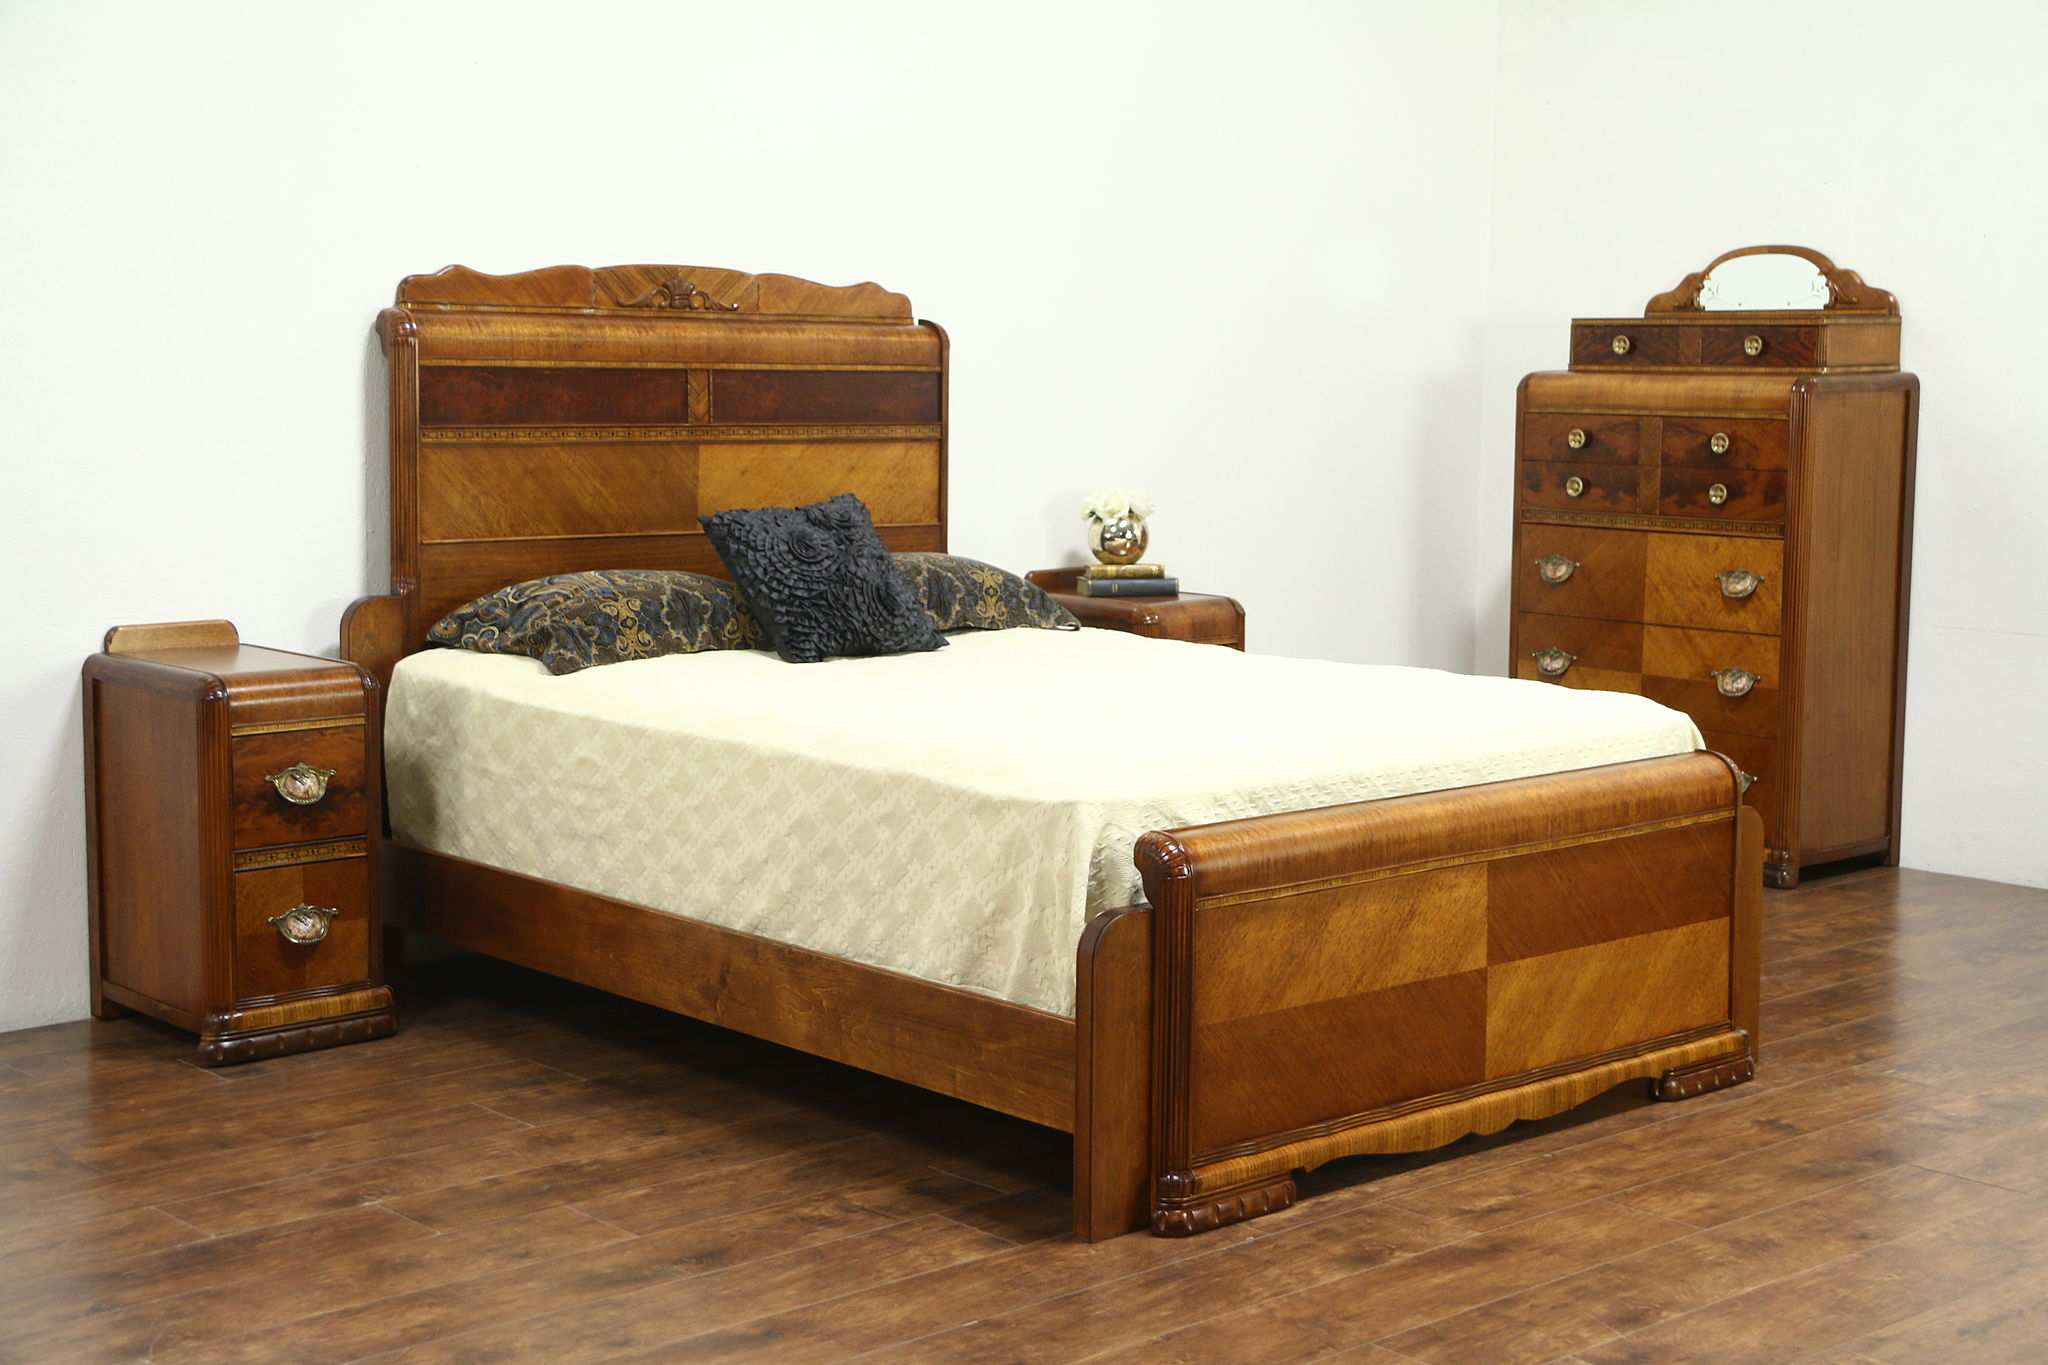 Waterfall Art Deco Vintage Bedroom Set Queen Size Bed, Tall Chest ...